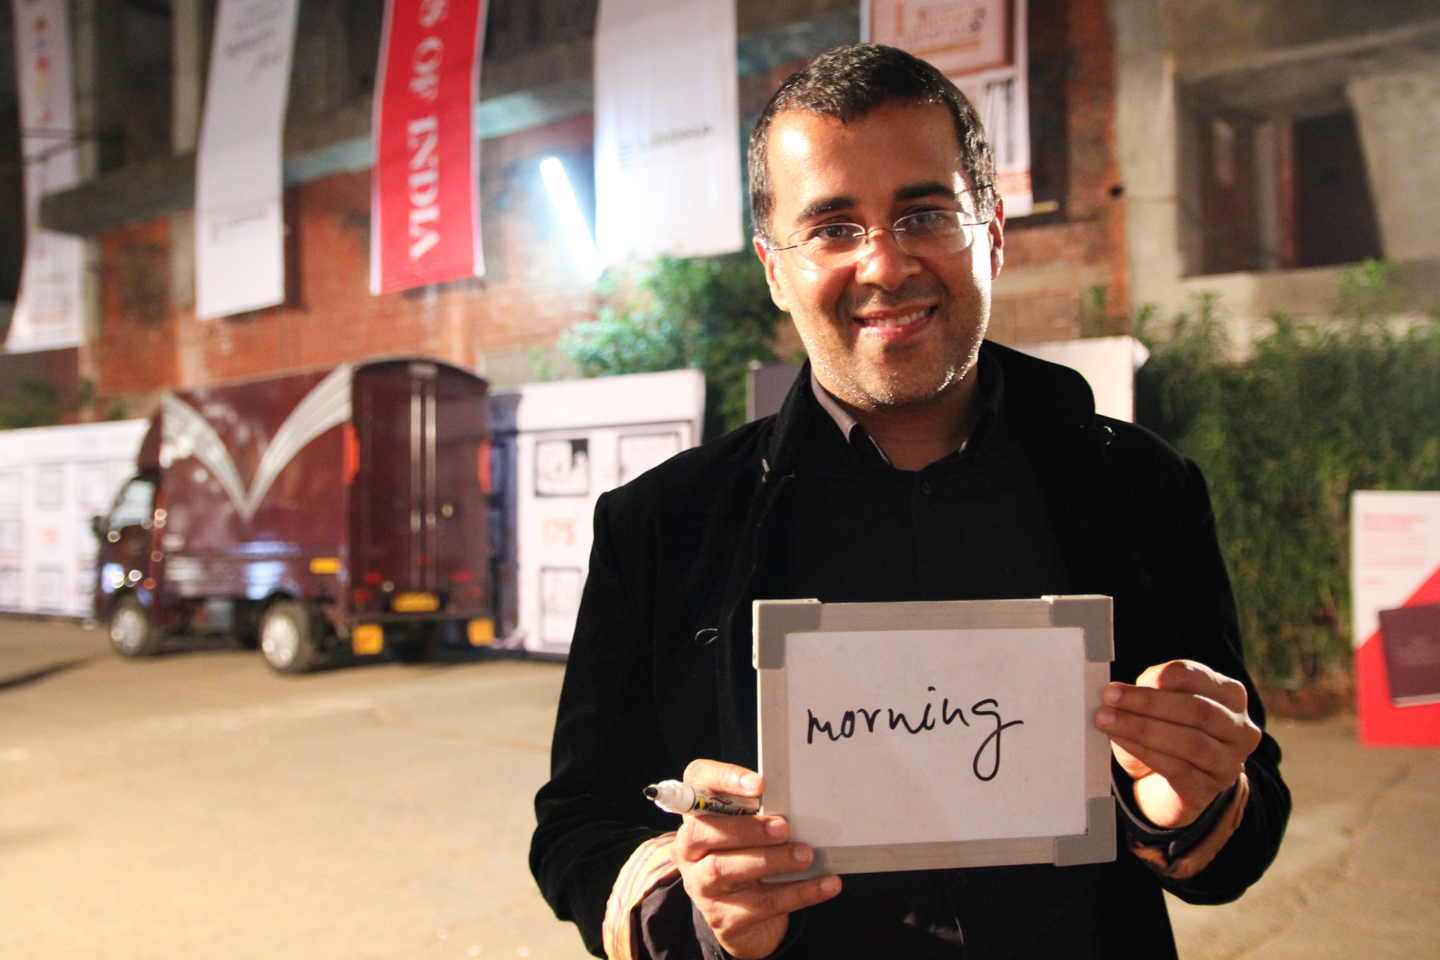 Chetan Bhagat, the biggest selling English language novelist in India's history, according to the New York Times, begins his mornings with a cup of tea. 'Mornings are extremely important for me,'  he told the Times of India. 'I usually wake up around 6:30 am and have tea with my wife Anusha by the window in our living room.'  Then he gets to the writing that has landed him on Time magazine's list of 100 most influential people in the world.